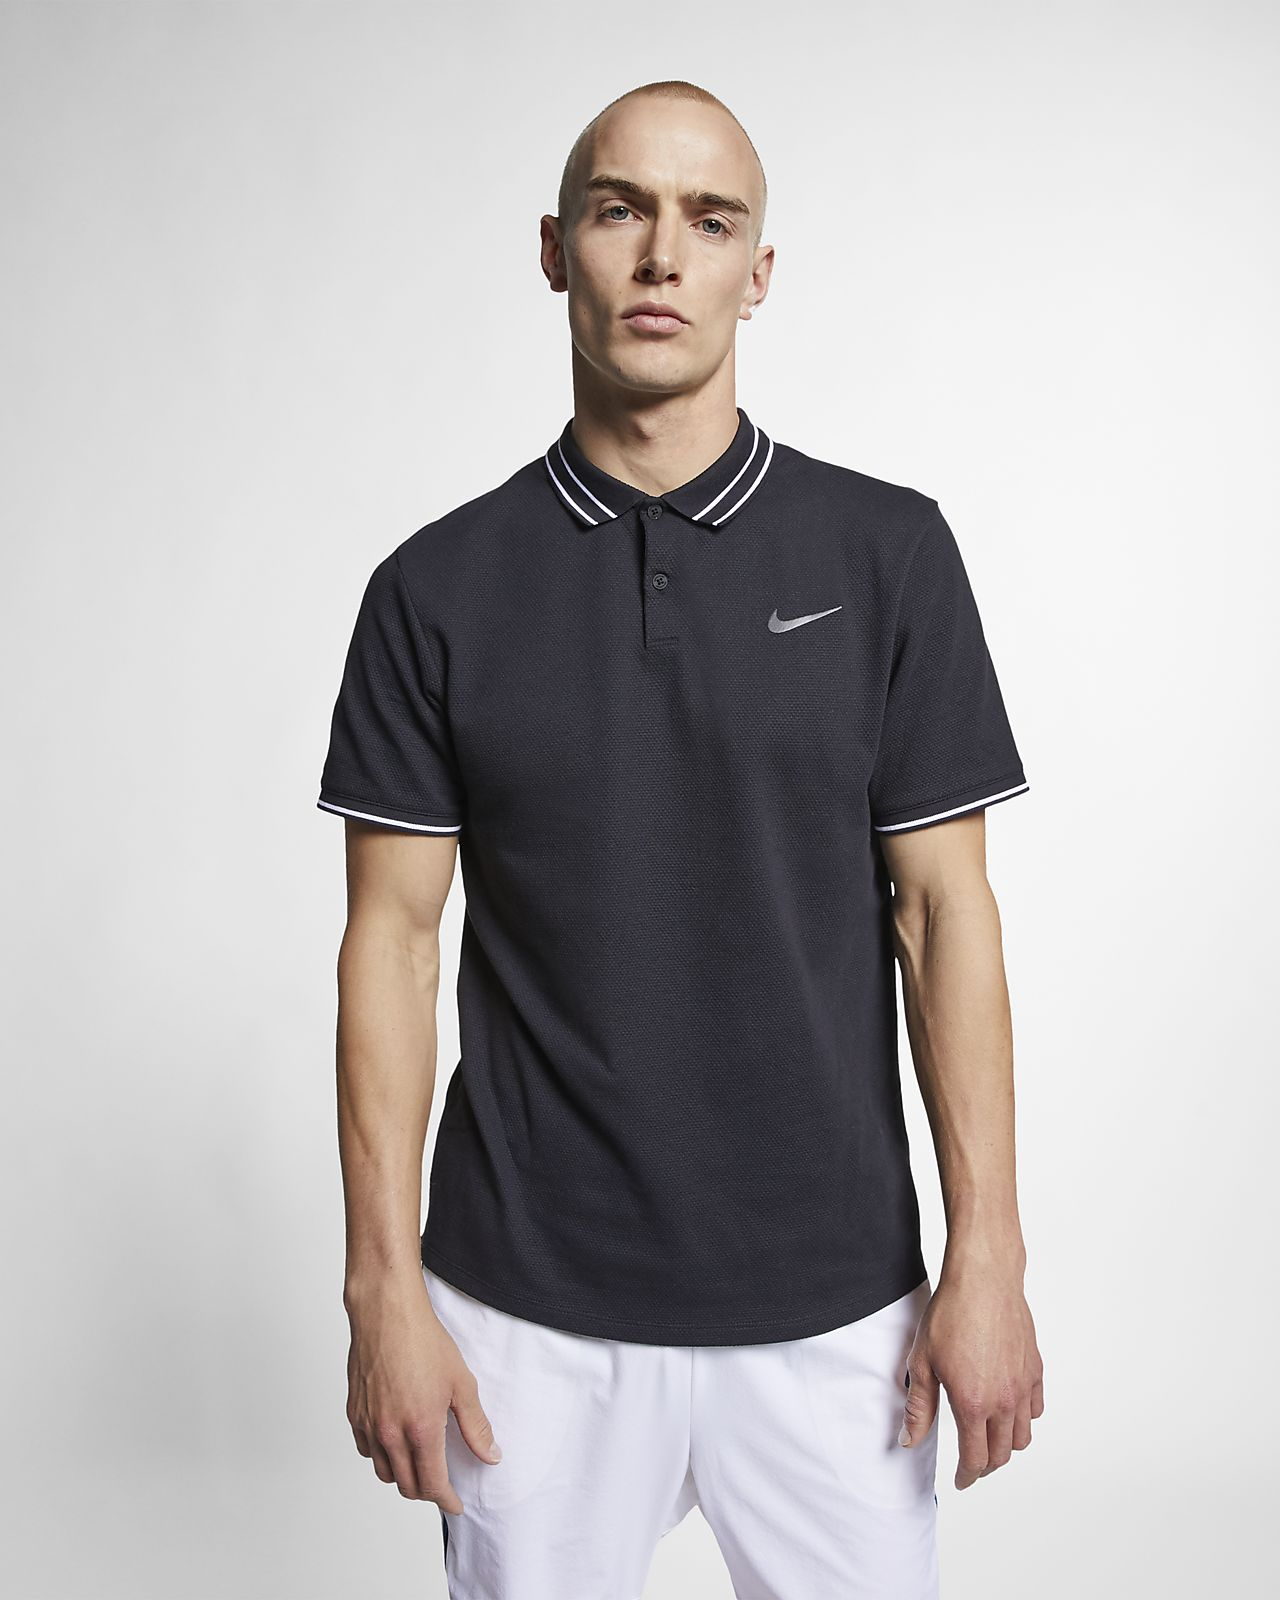 newest 19df7 f774f ... Polo de tennis NikeCourt Advantage pour Homme